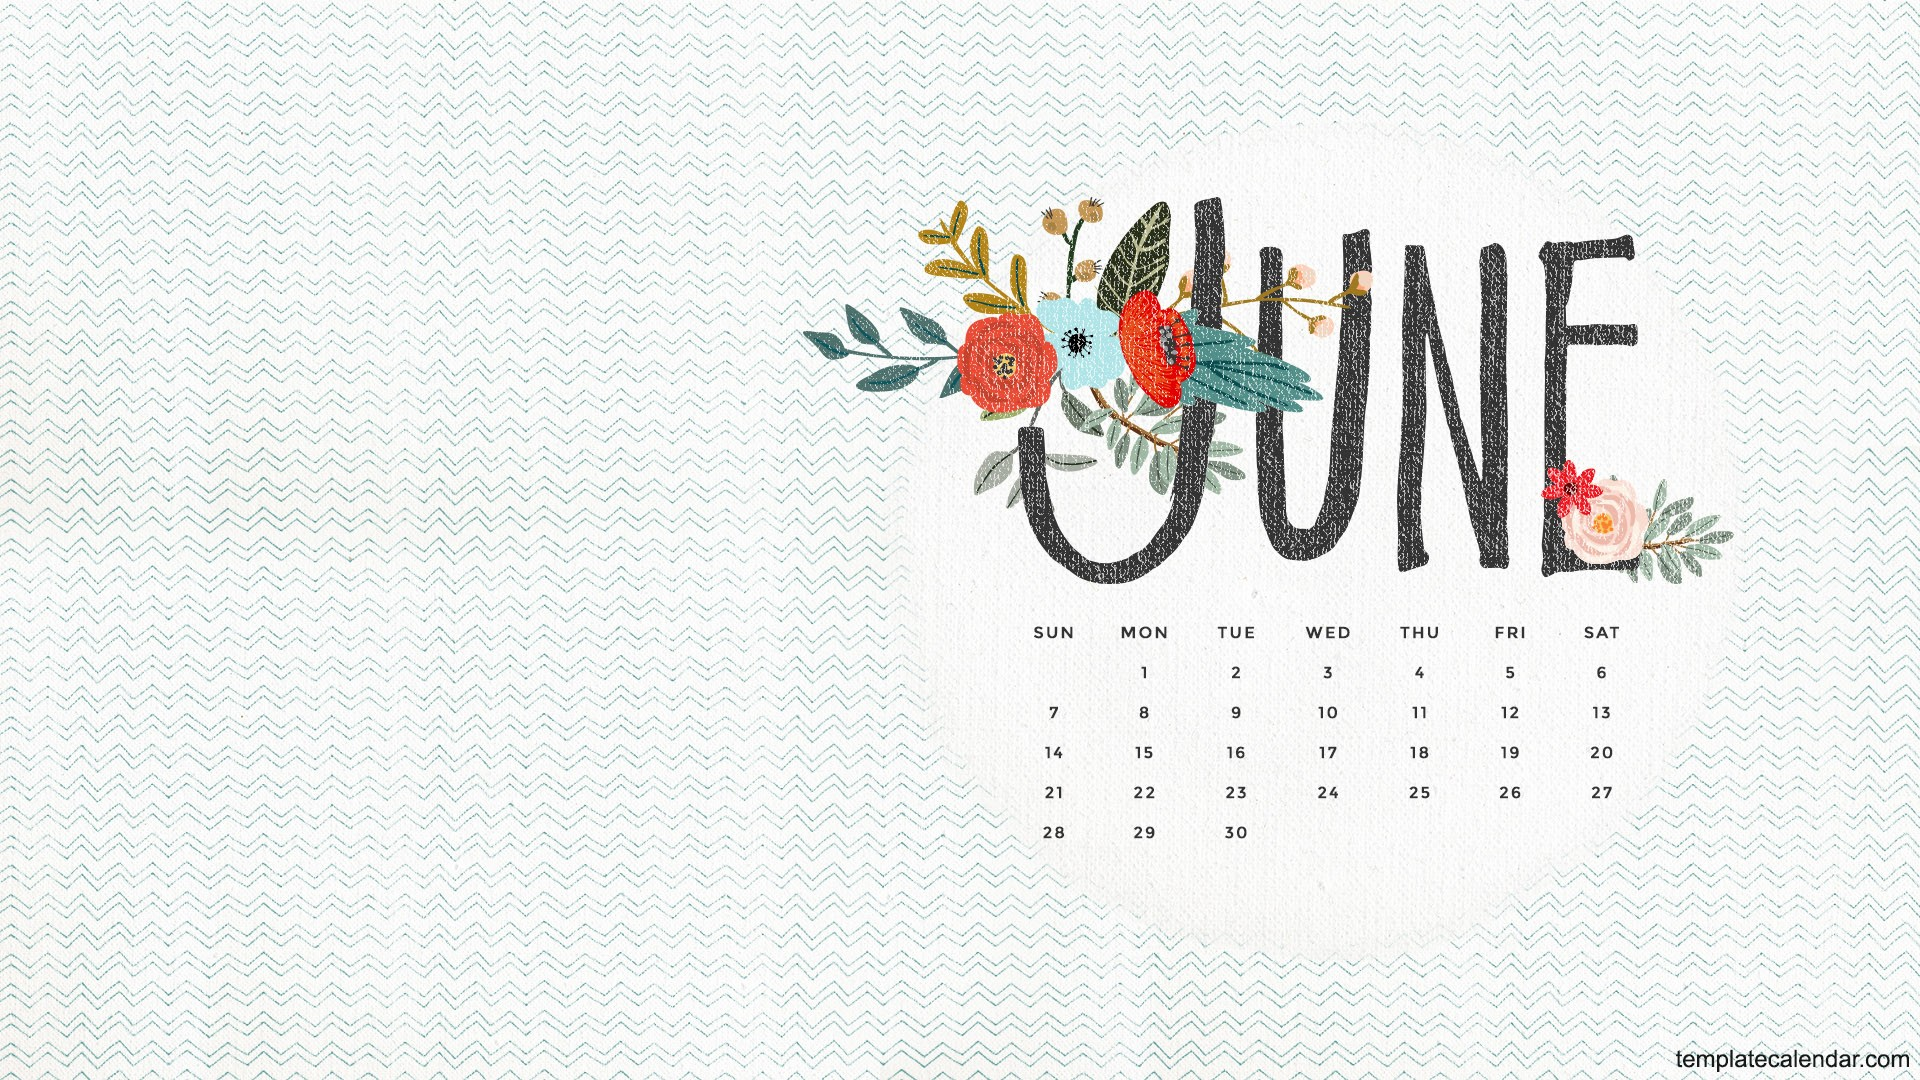 Desktop Wallpaper June 2018 Calendar Lamps Bobbygracefurniturecom 1920x1080